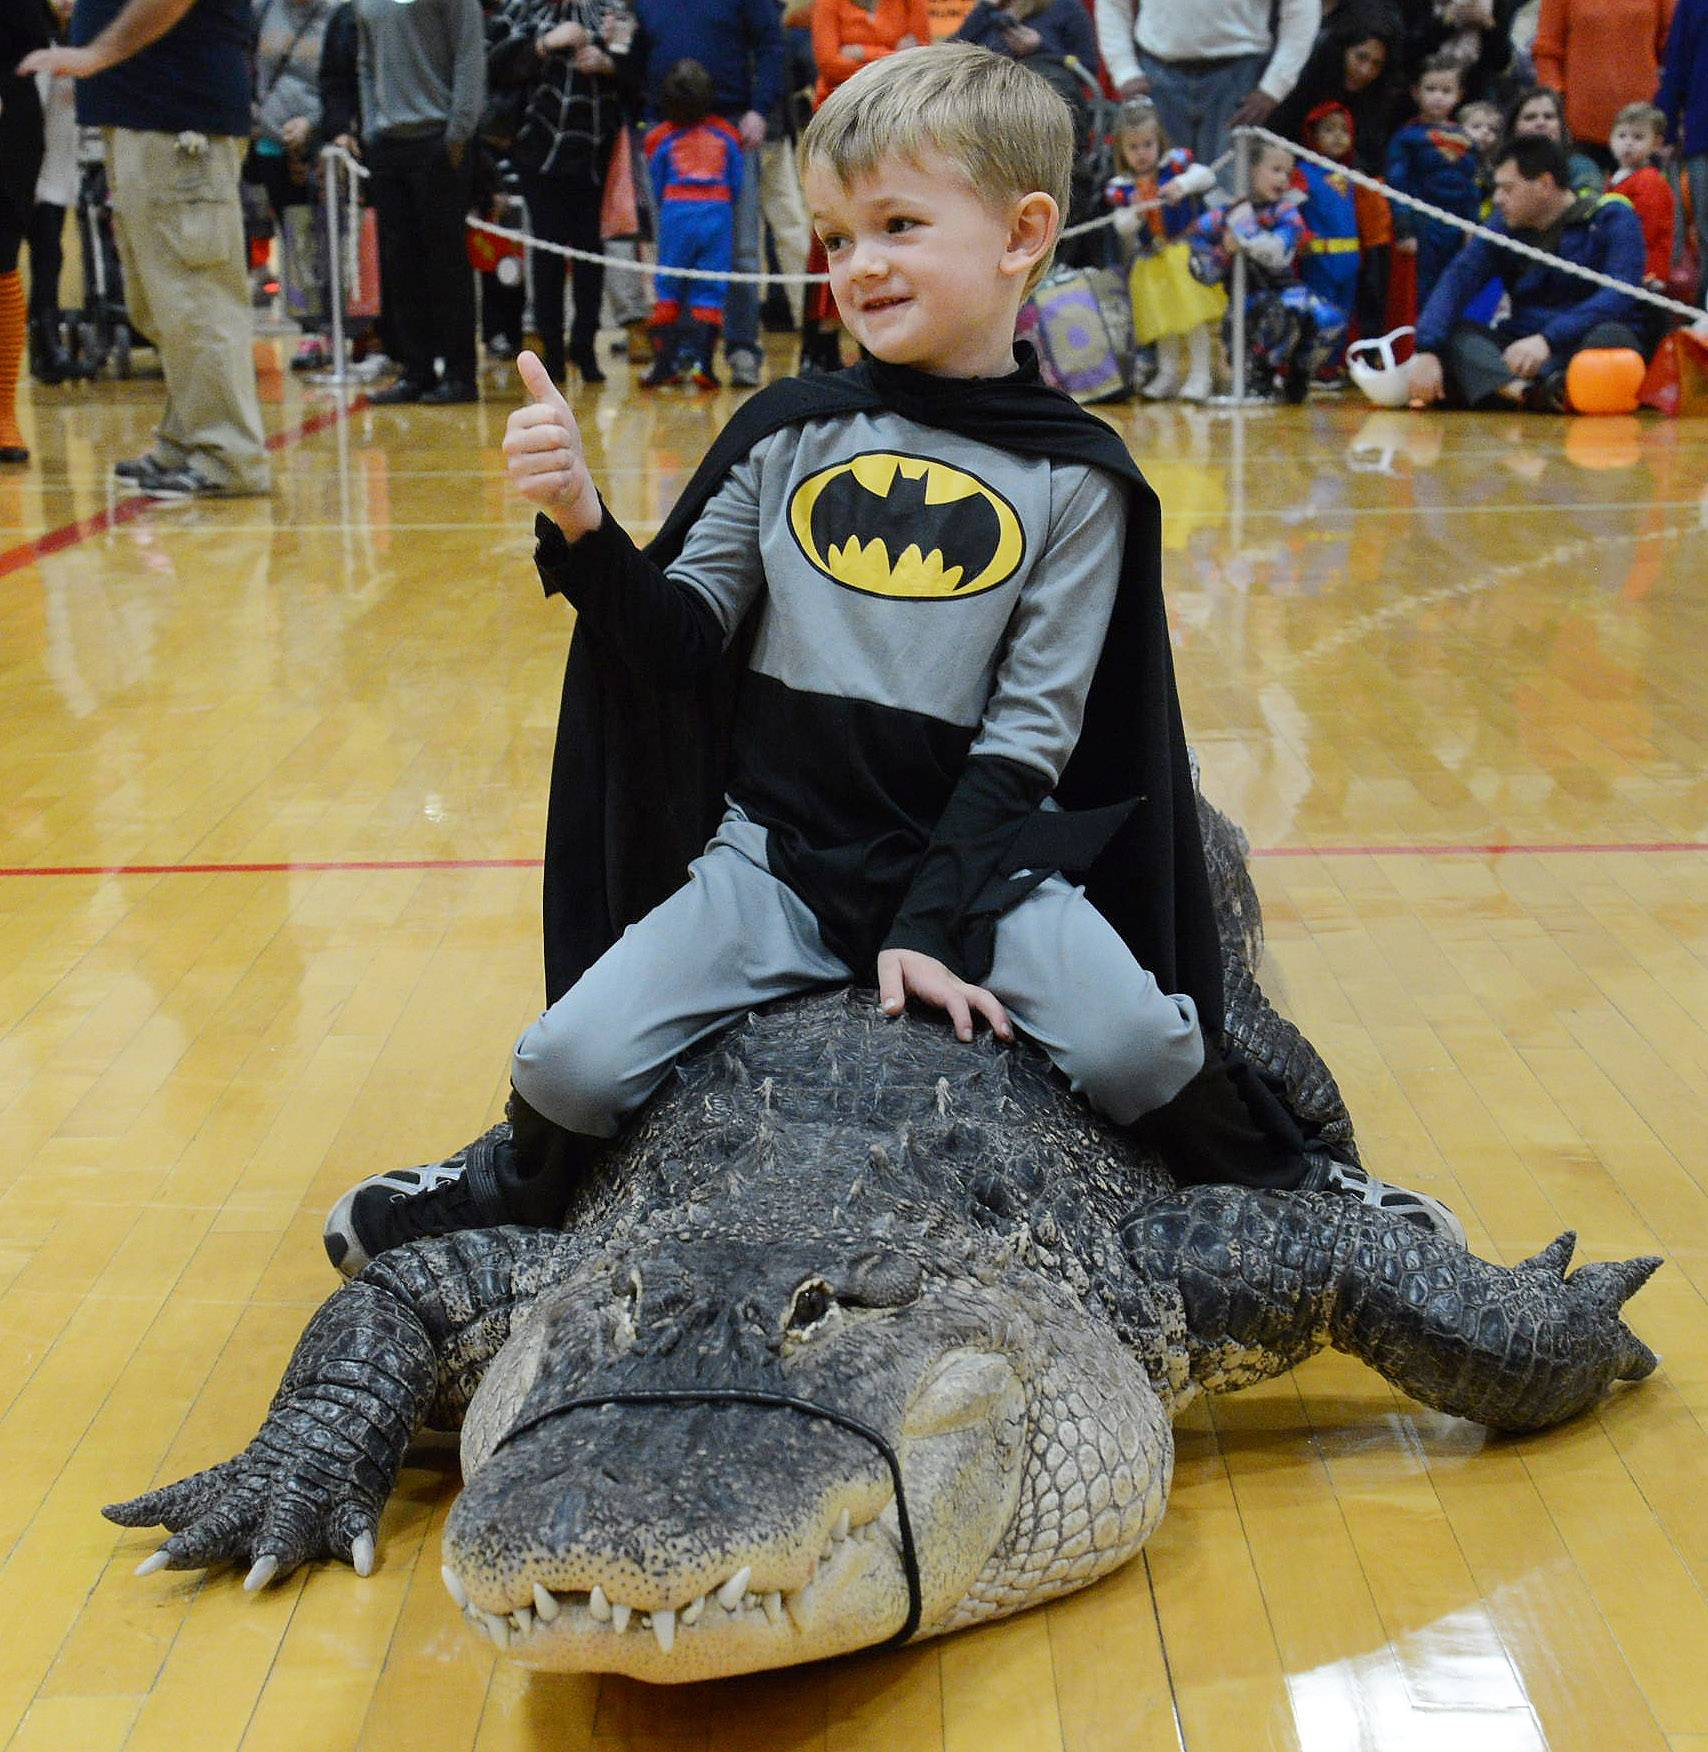 Five-year-old Tristen Suehr, of Palatine gives a thumbs up while riding an alligator, courtesy of Jim Nesci and his Cold Blooded Creatures during a Halloween Party at the Palatine Community Center.